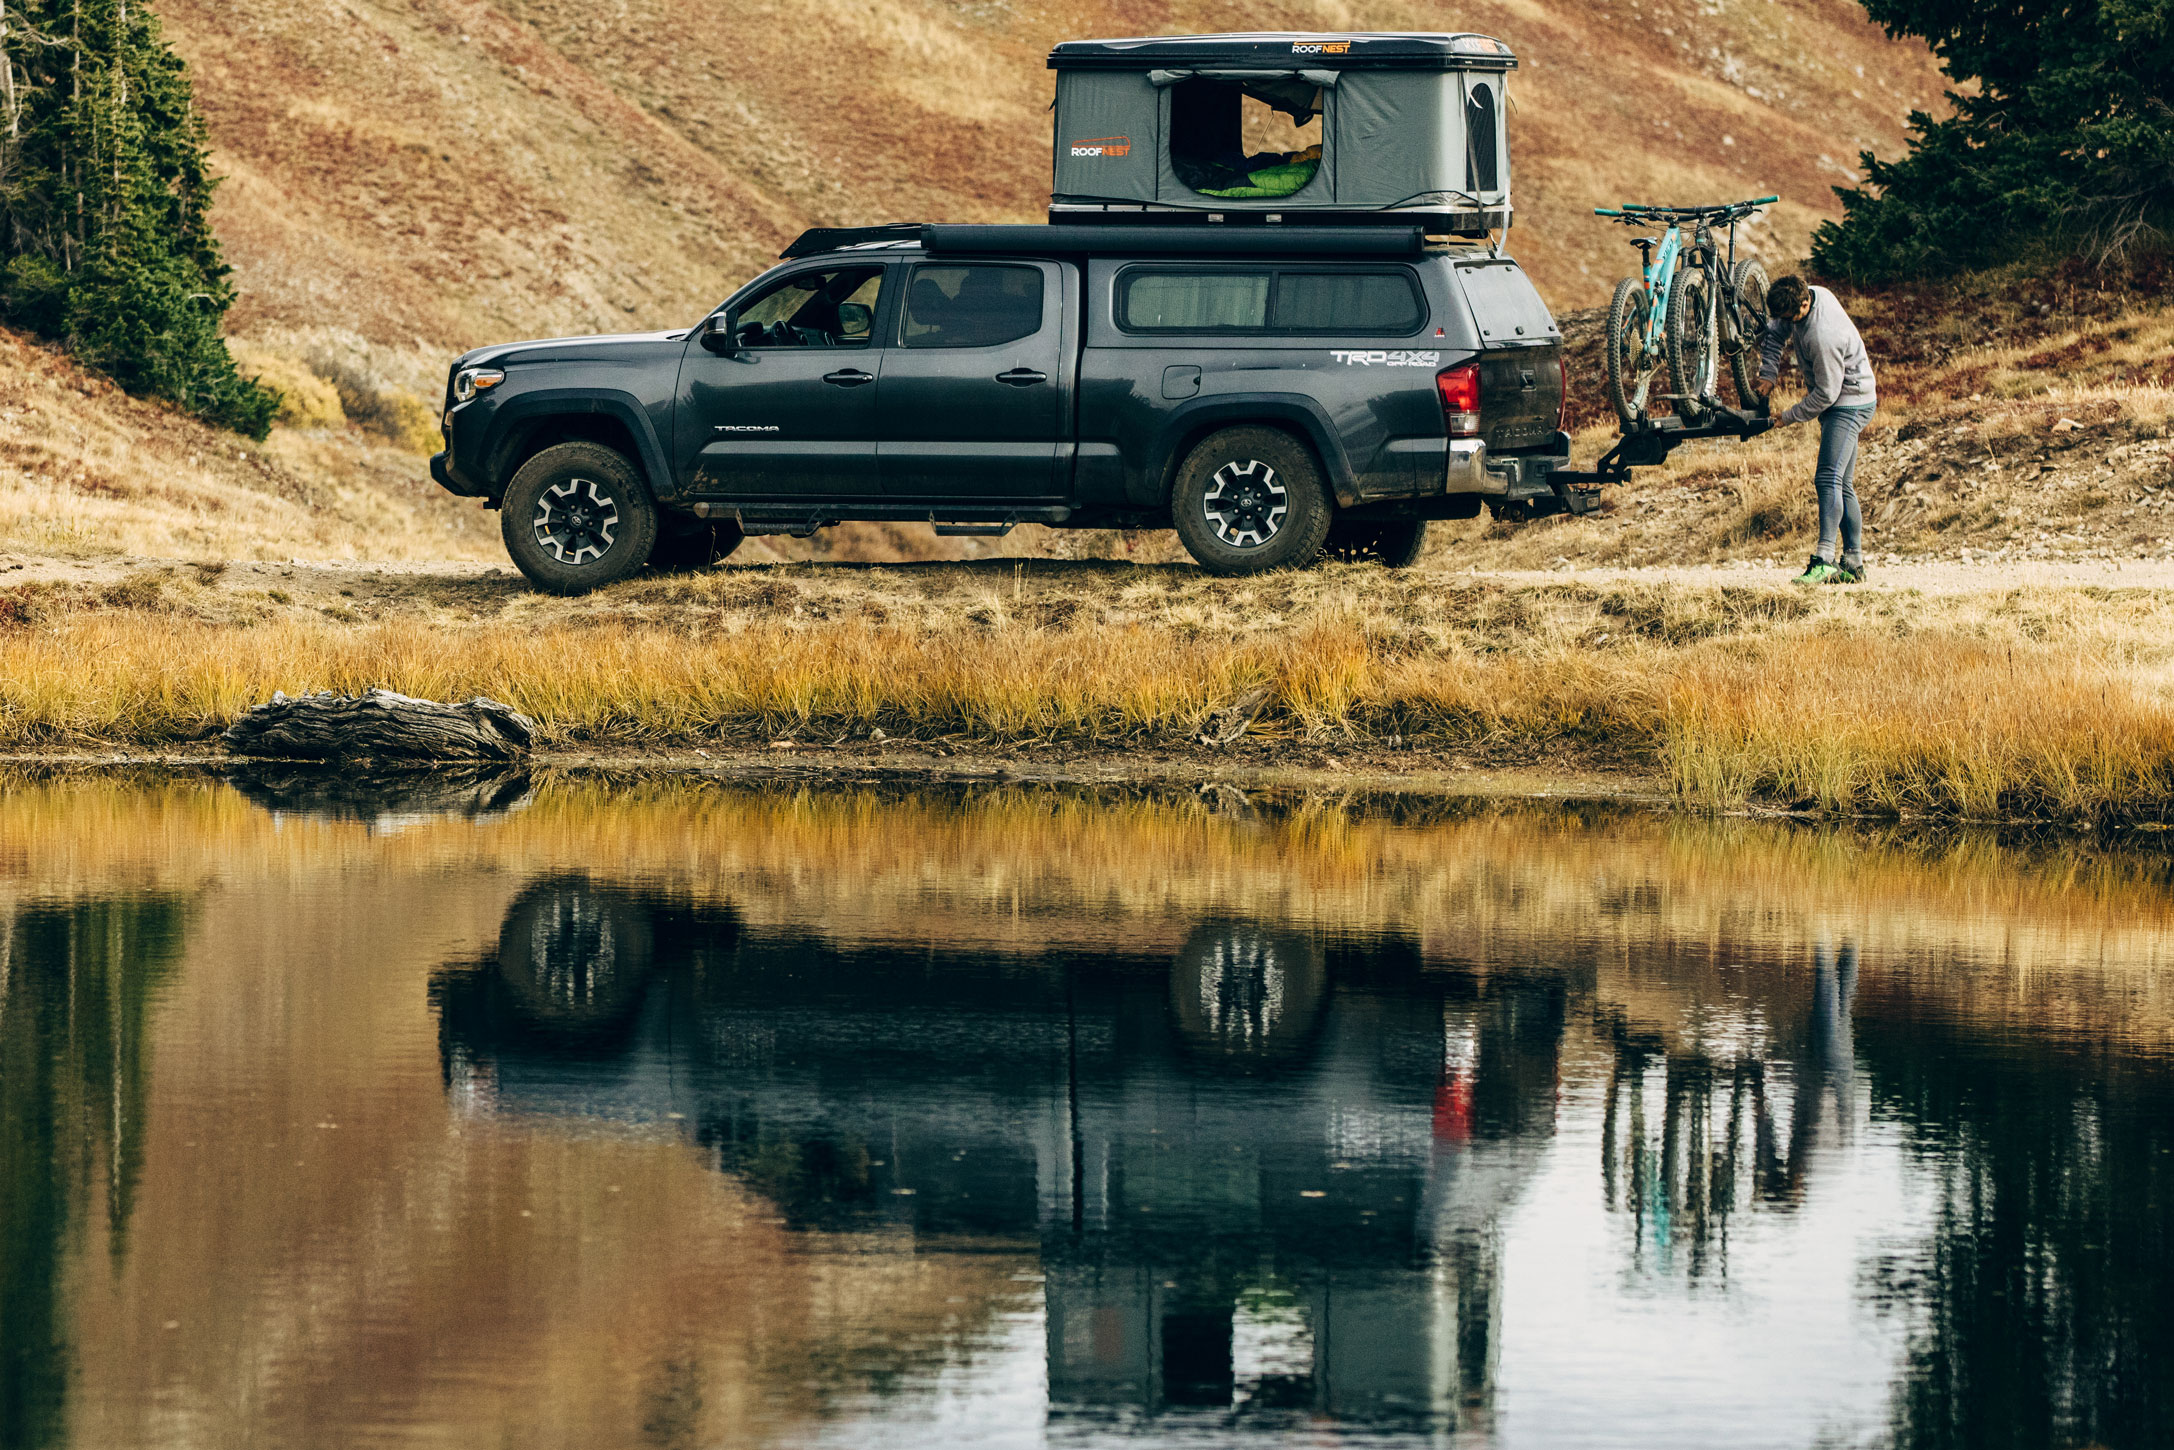 Roof Nest Sparrow rooftop tent